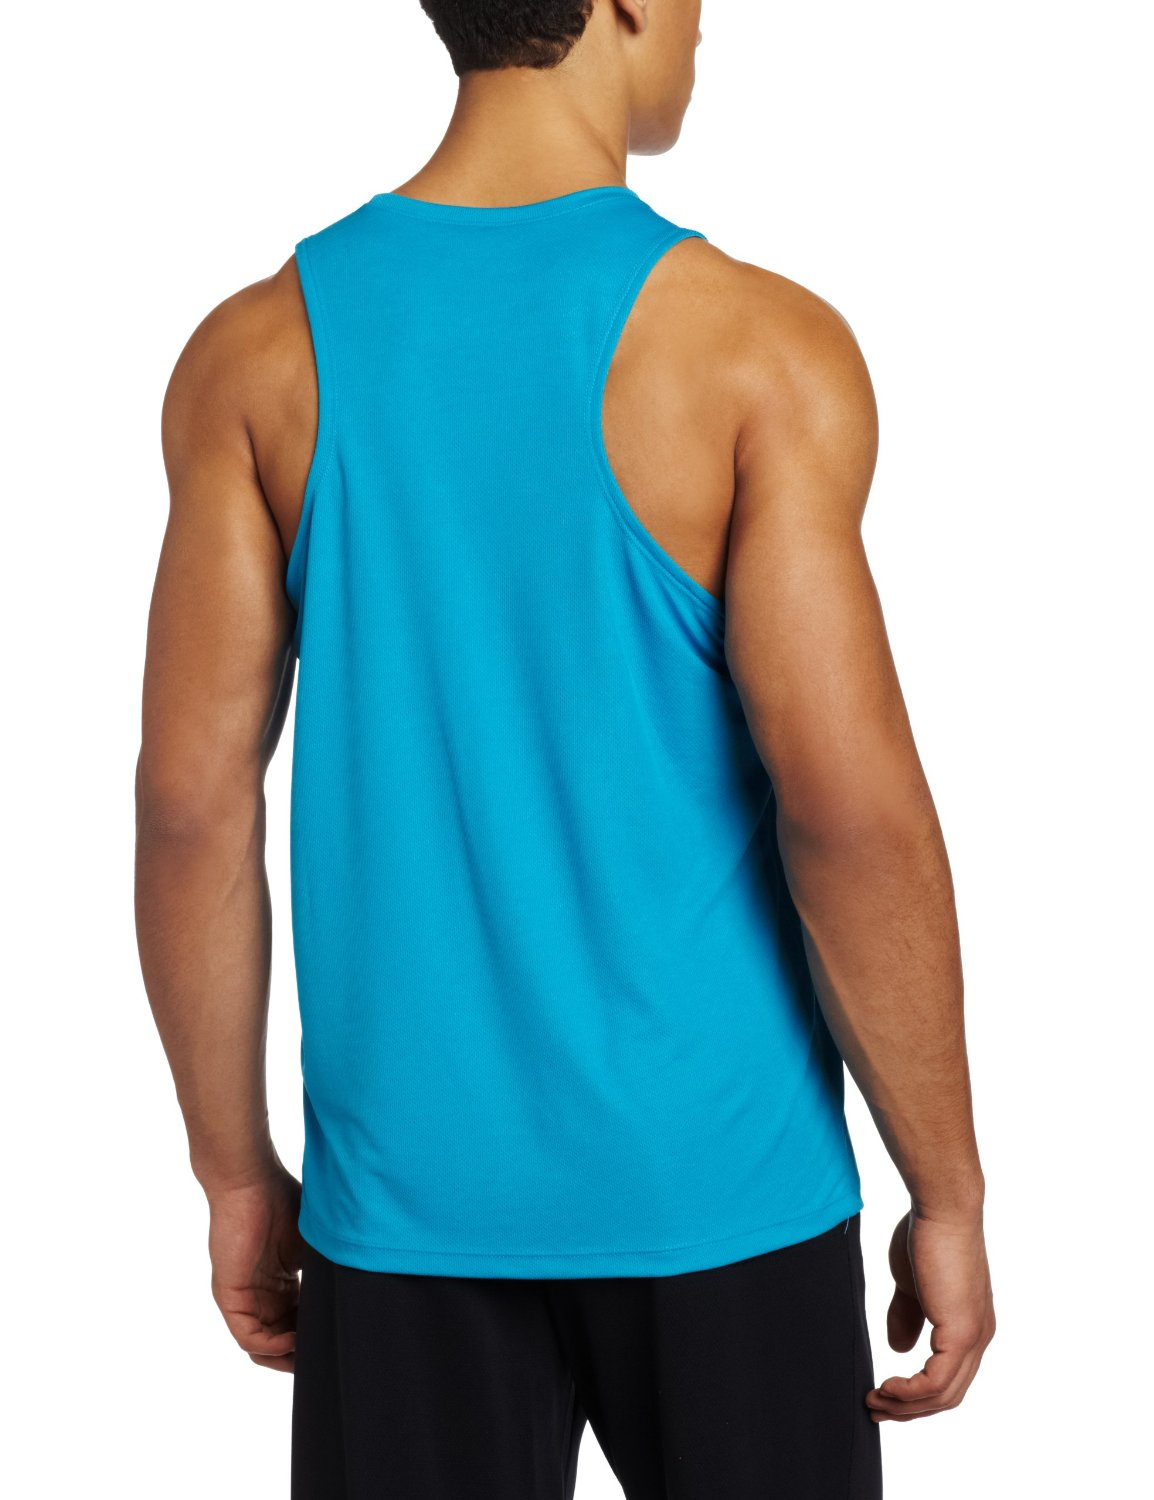 Clothing Shop Online is a one-stop online shop to buy discount mens tank tops. We have cheap mens tank tops for sale in all sizes from some of the biggest brands in the industry.